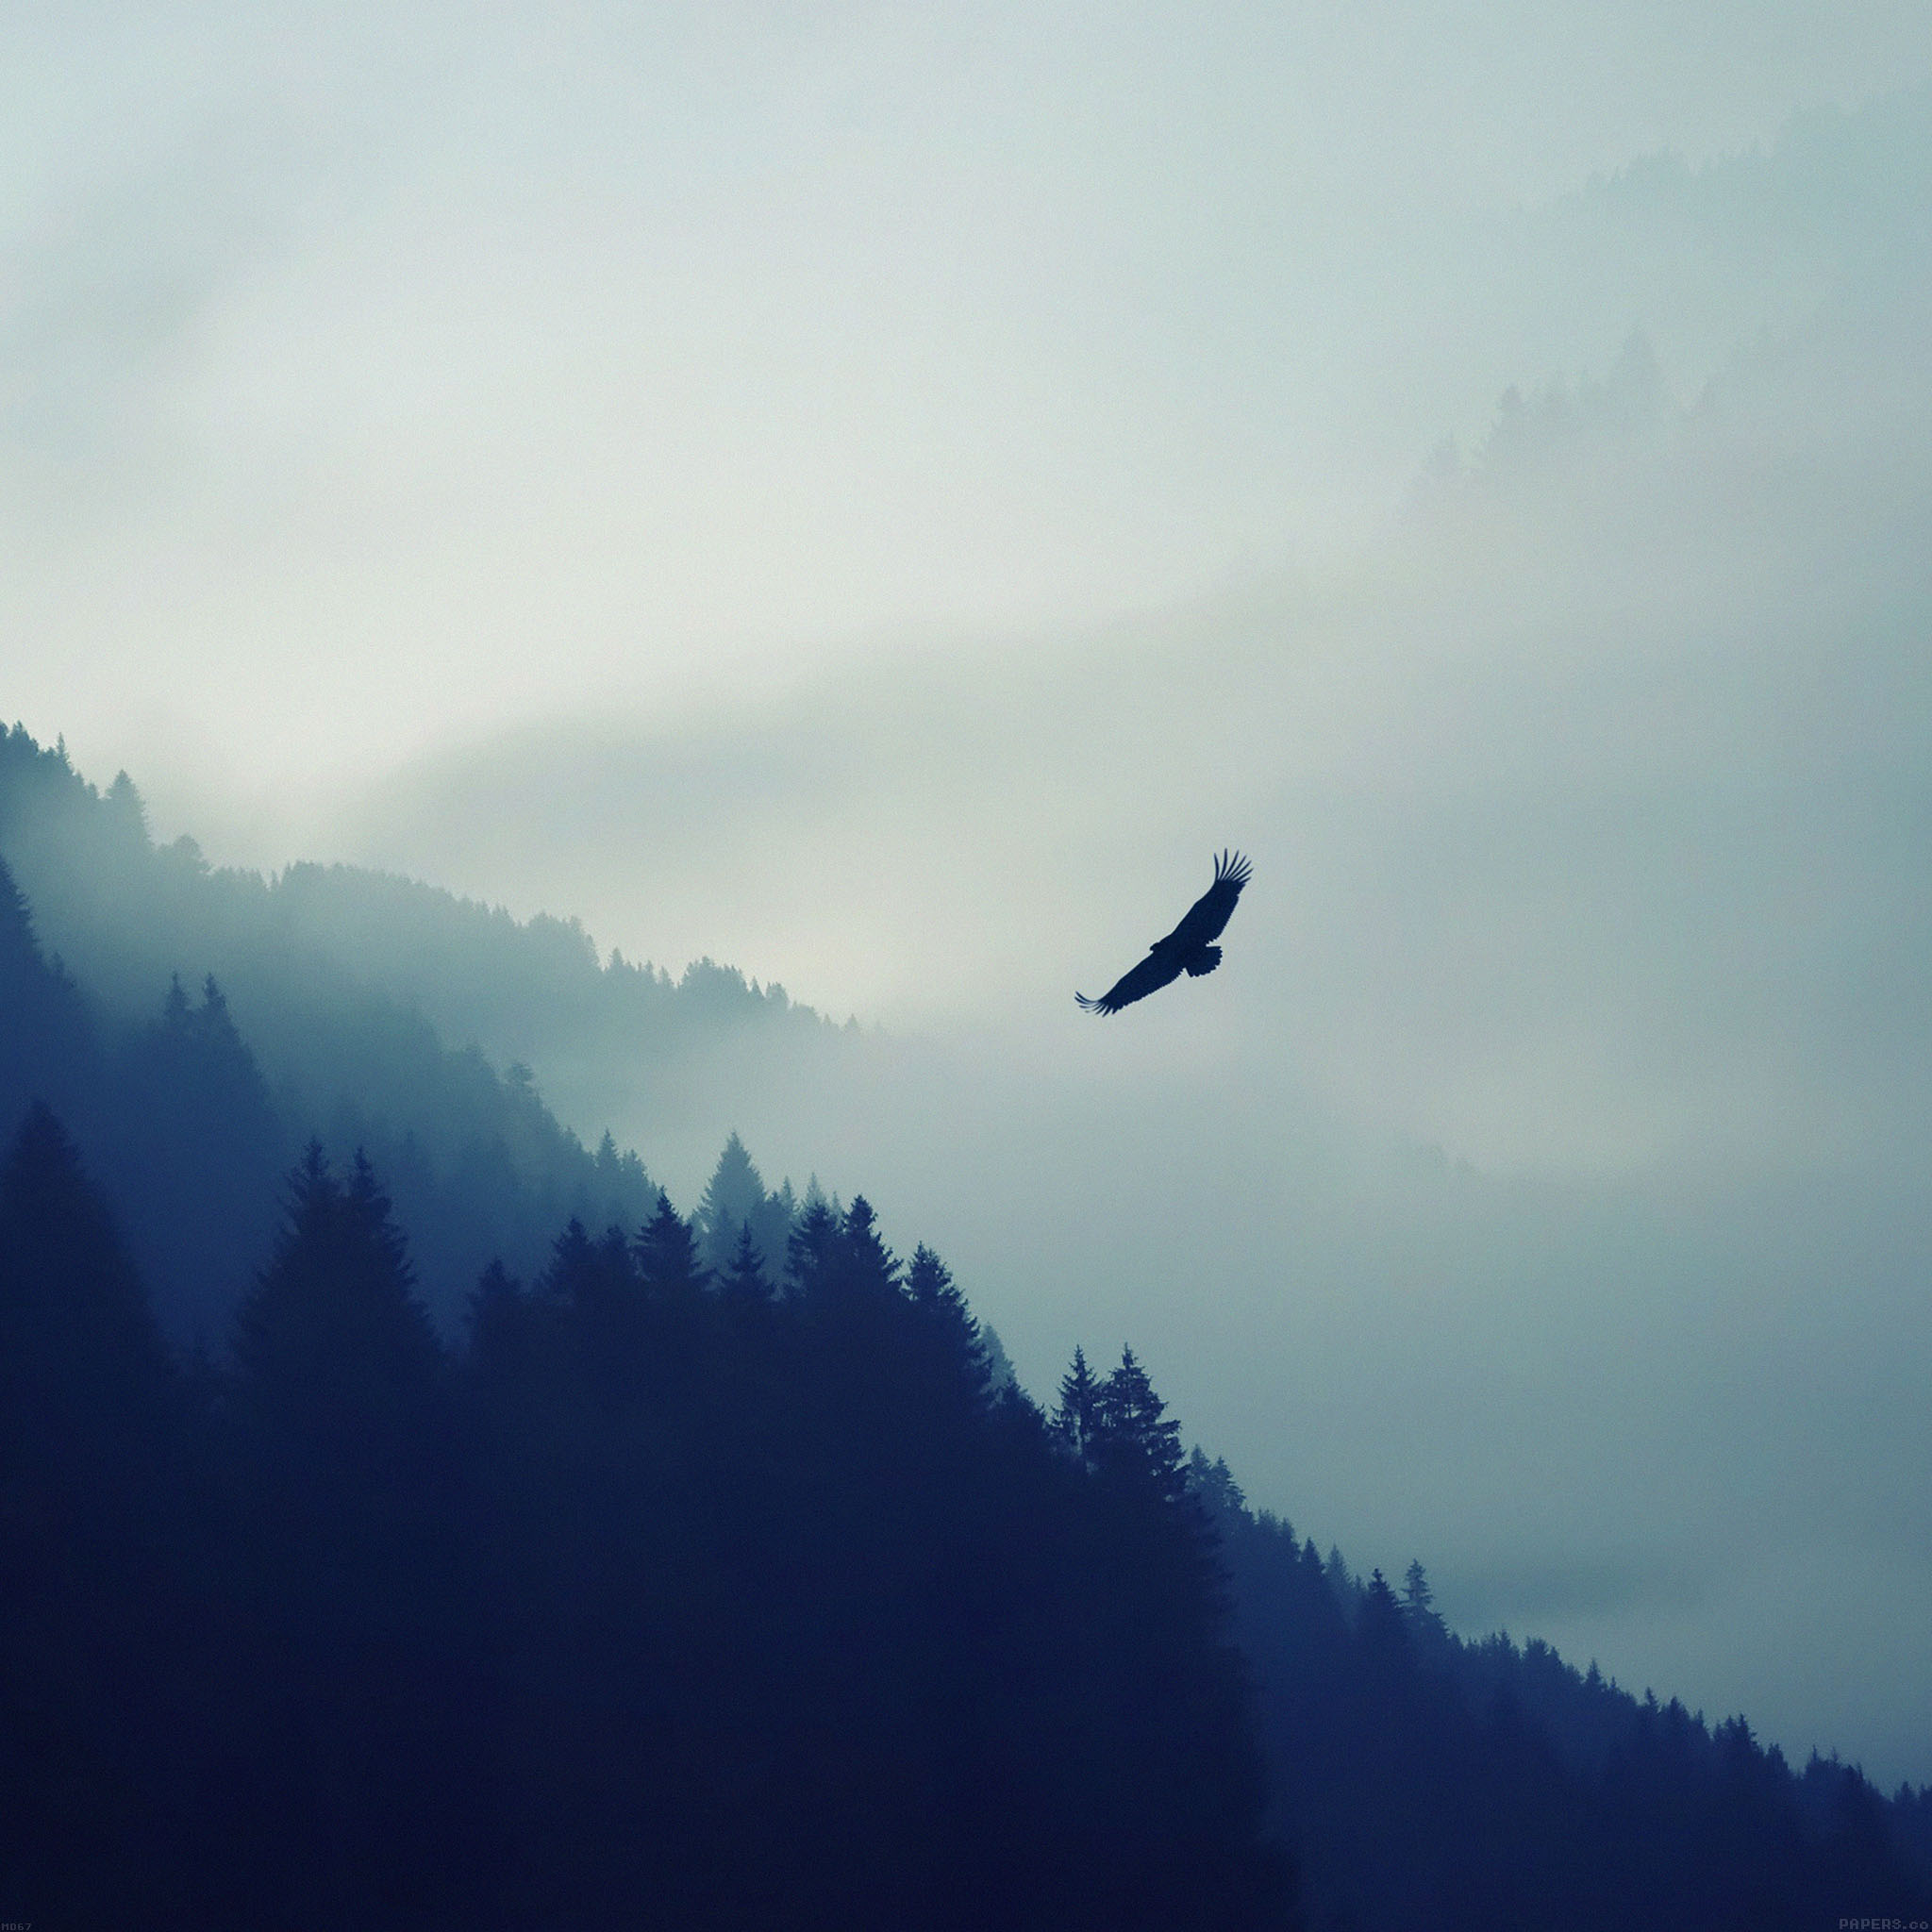 4k Laptop Wallpaper Fall Forest Freeios7 Md67 Eagle Mountain Fly Animal Parallax Hd